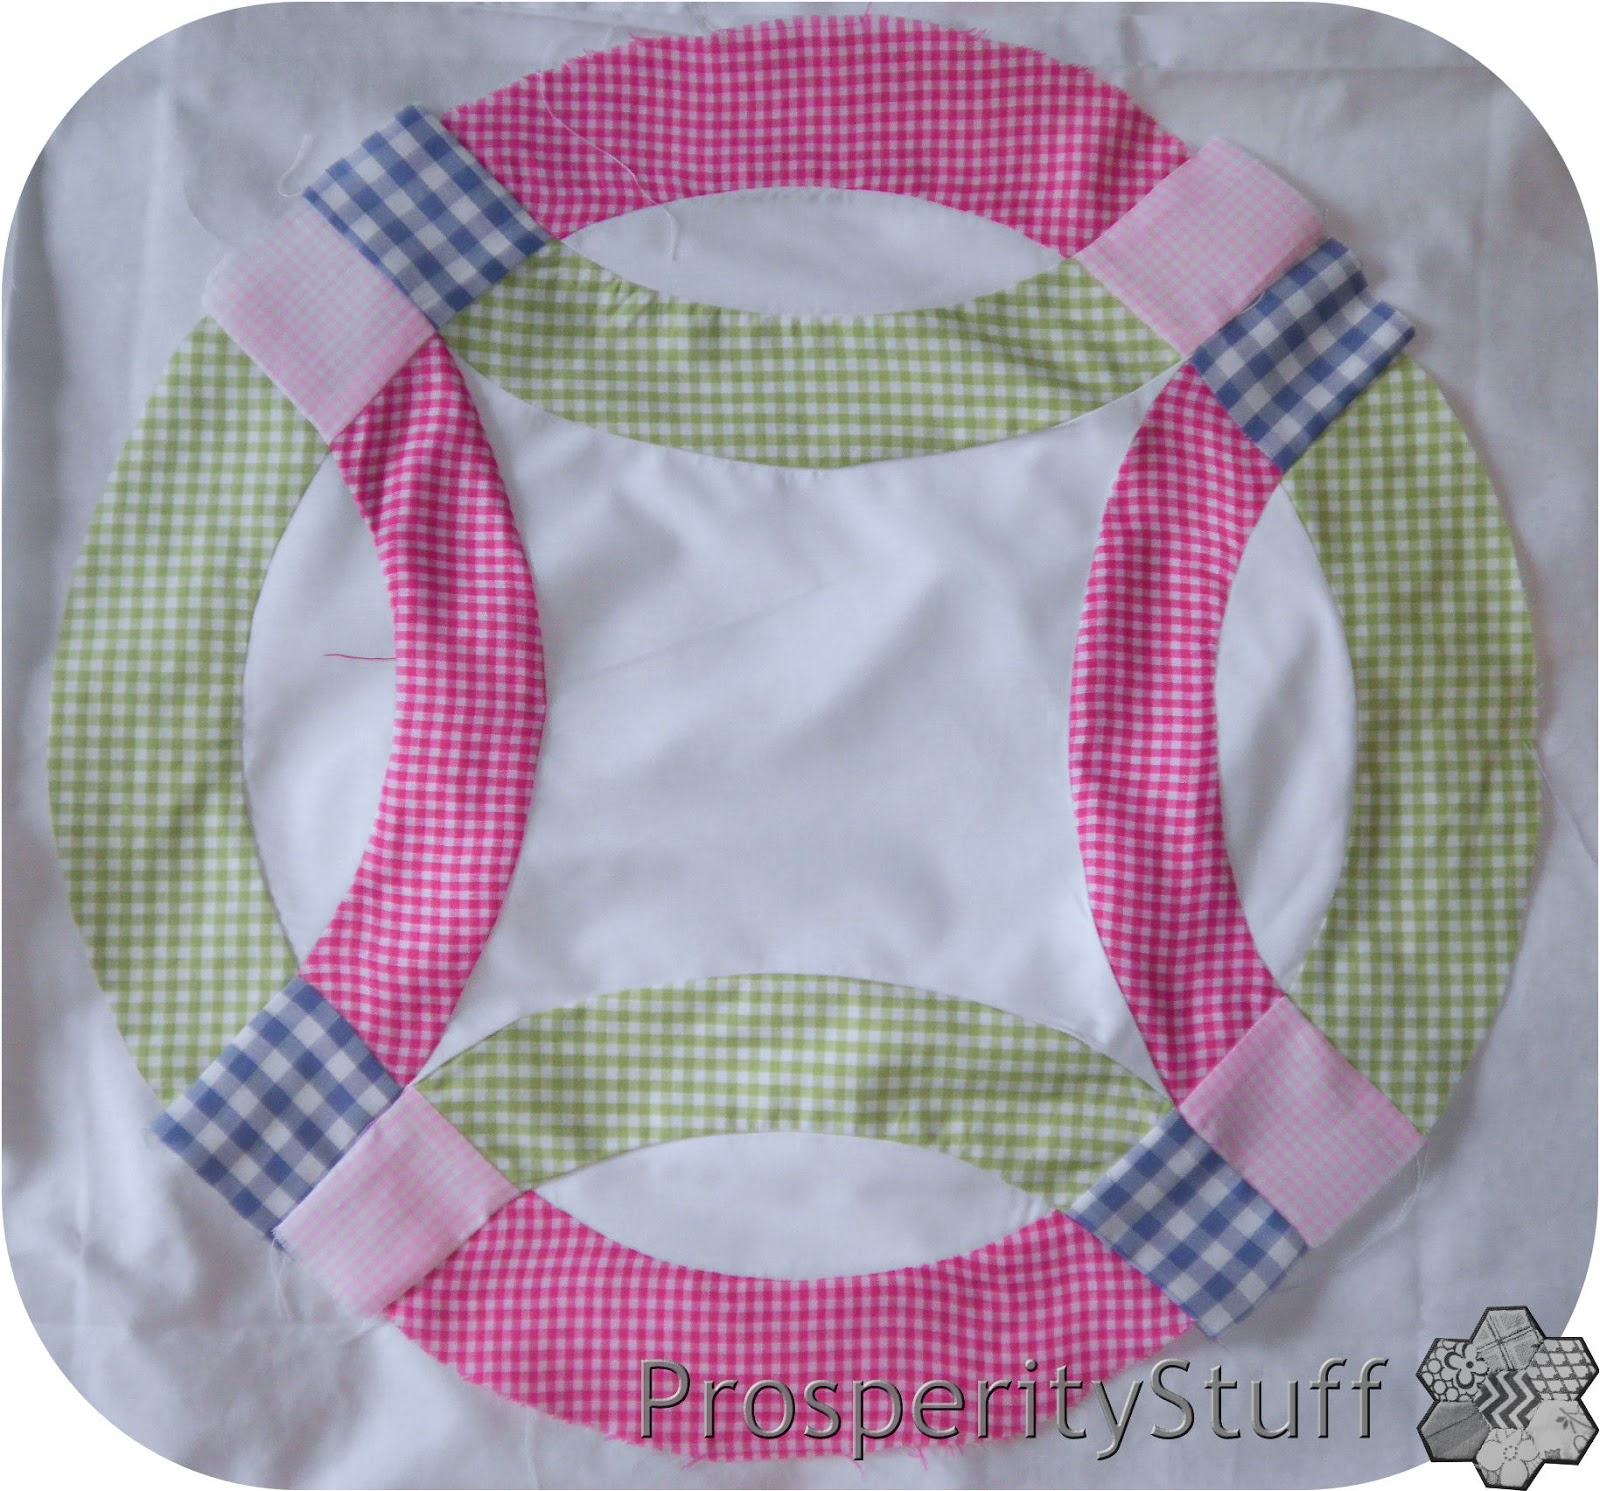 ProsperityStuff Quilts Double Wedding Ring Gingham style